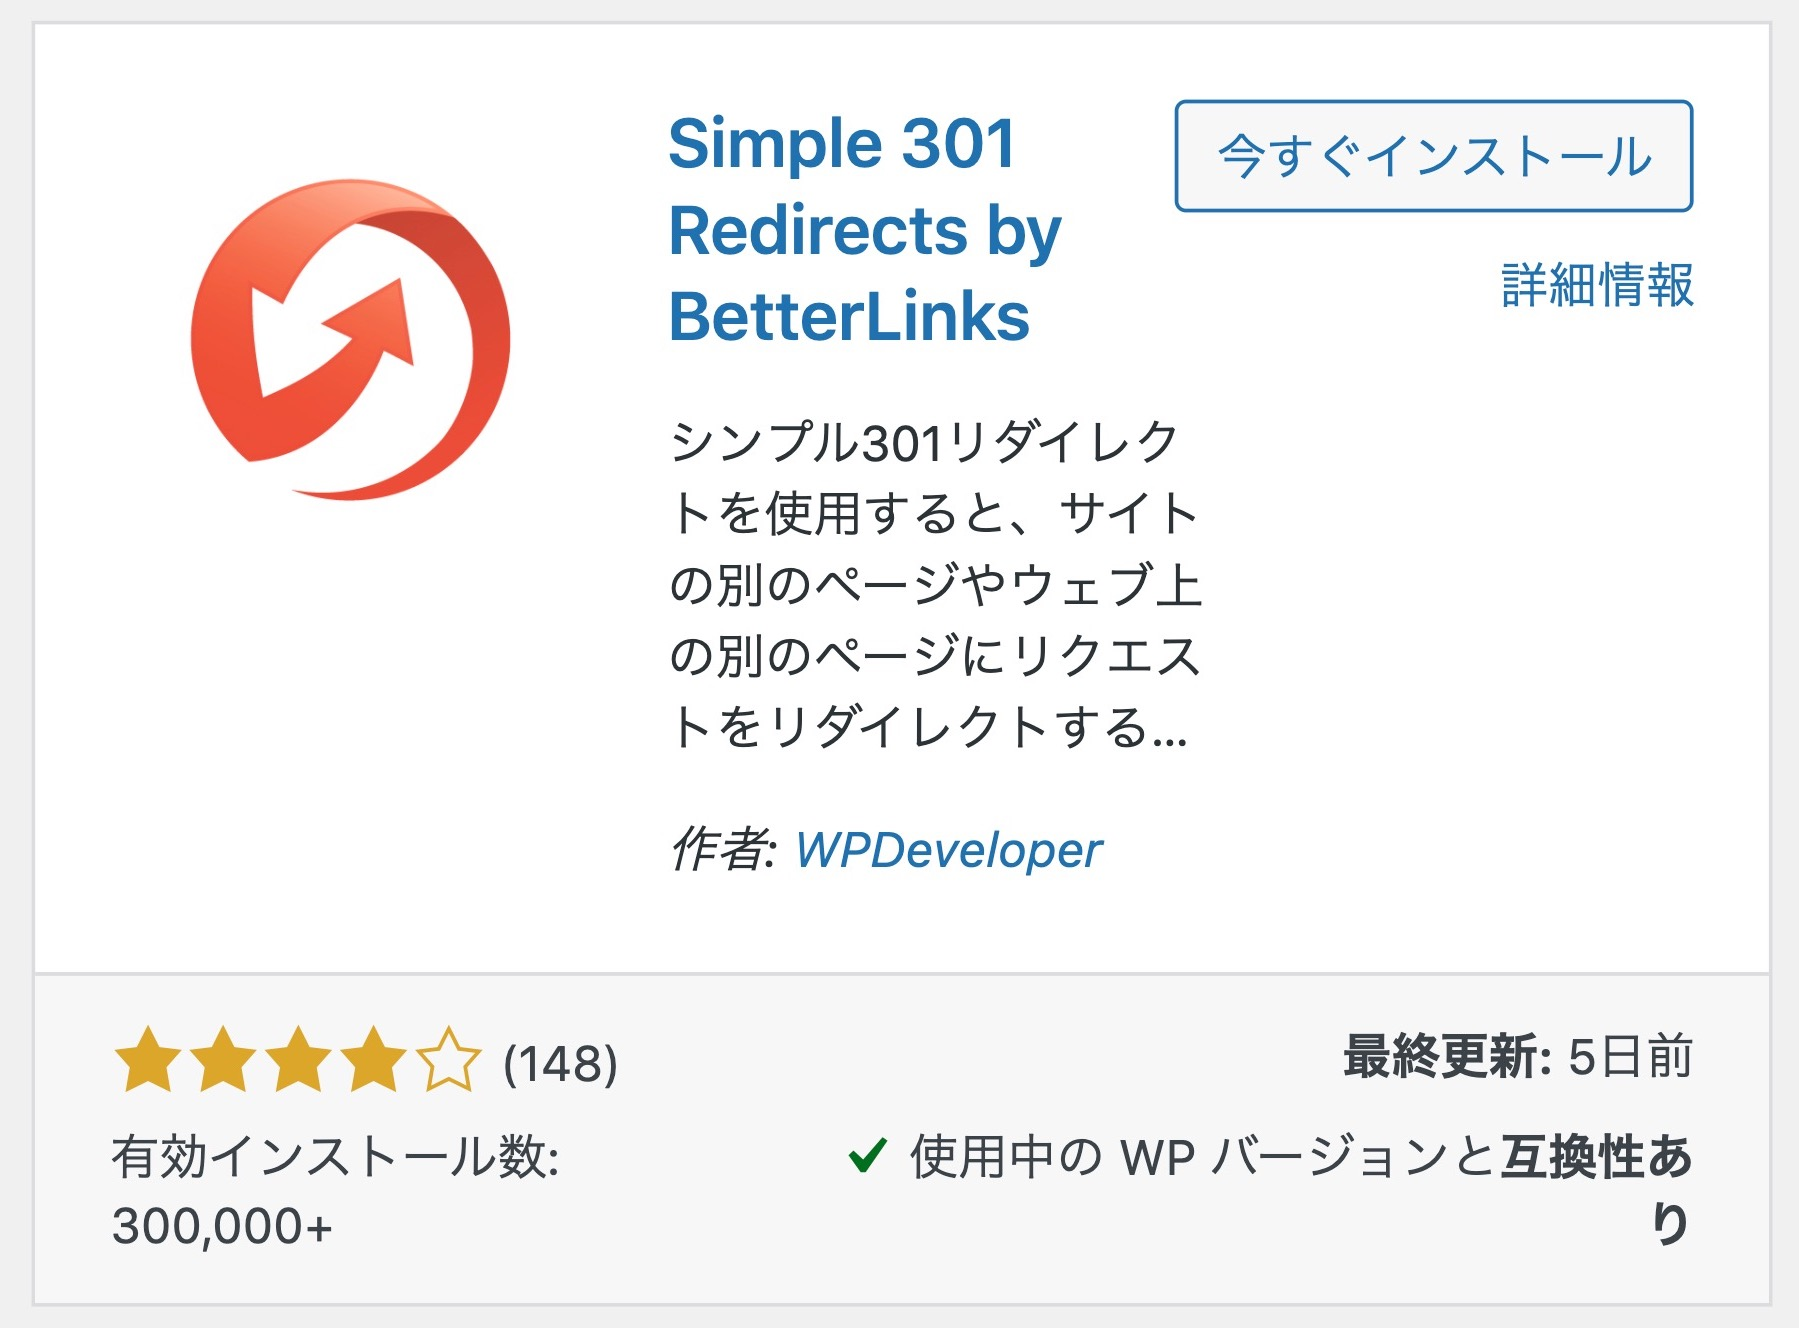 Simple 301 Redirects